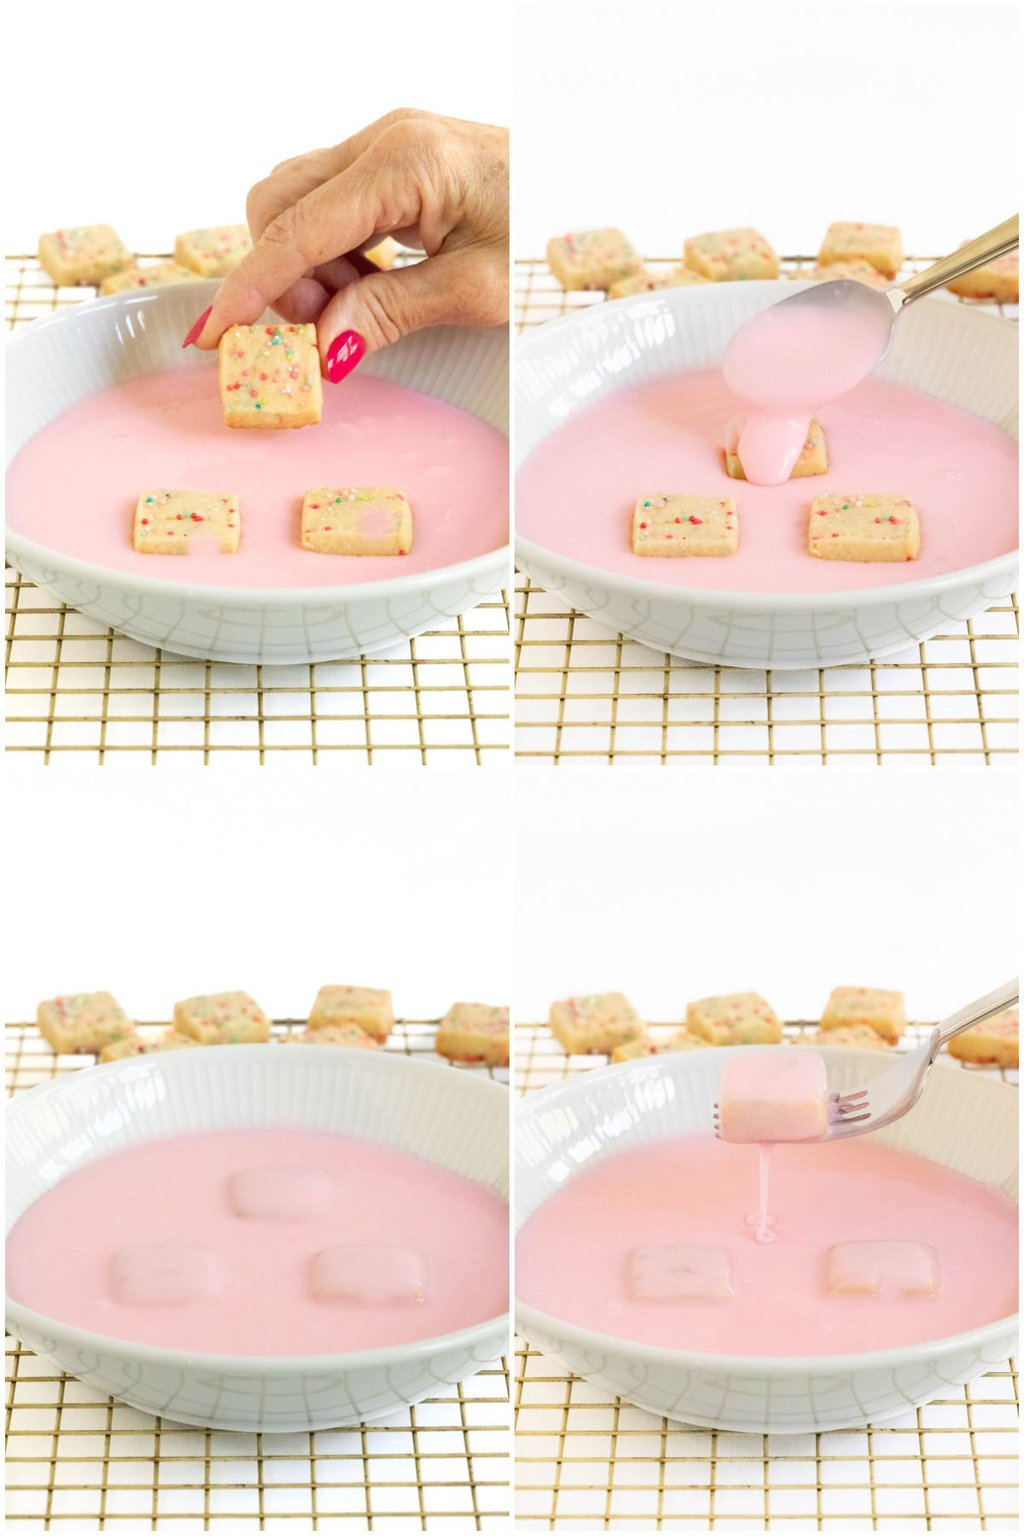 4-photo process collage of how to apply the pink glaze for making Sugar Plum Fairy Shortbread Bites.